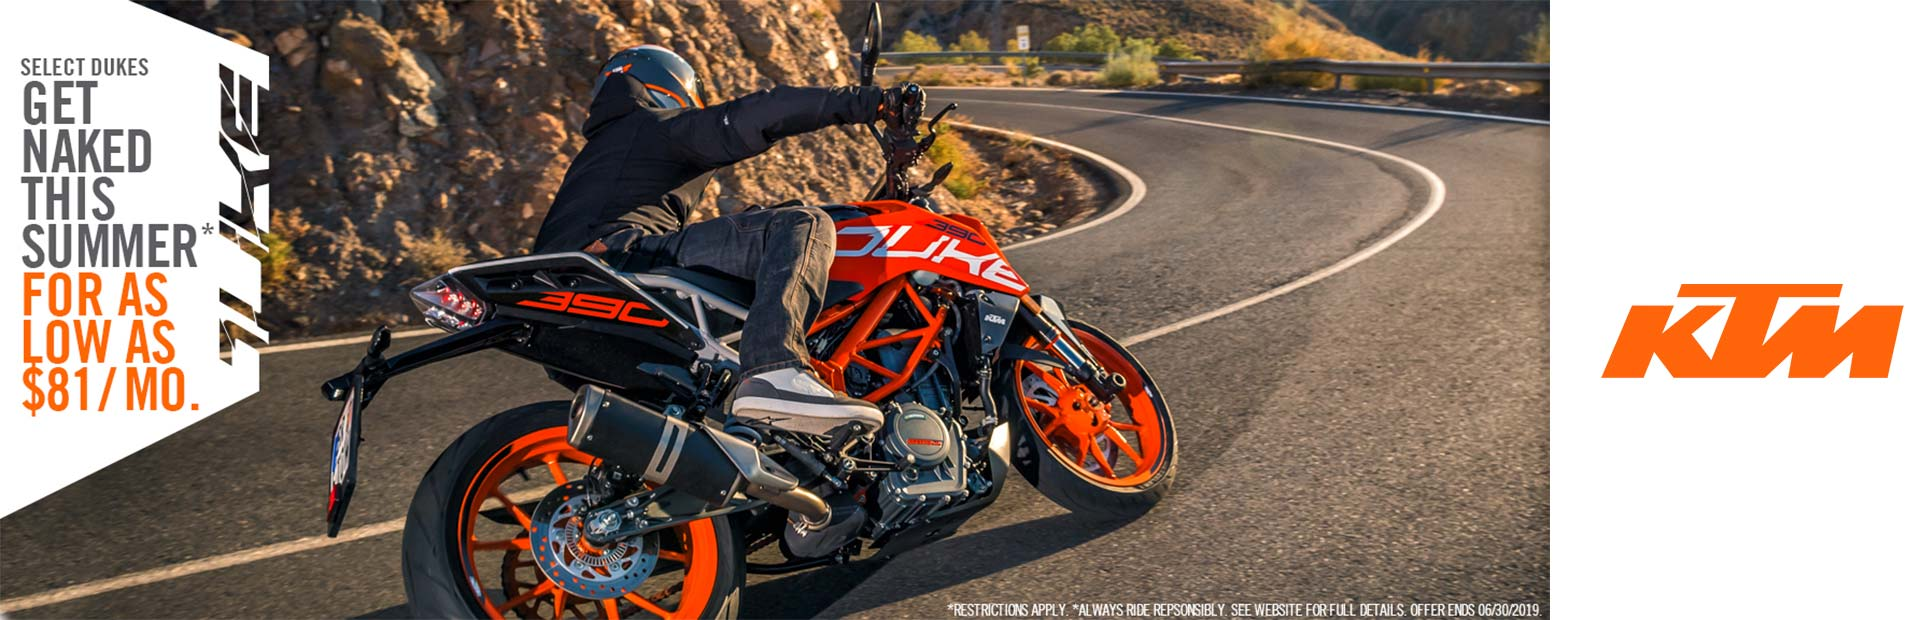 KTM: GET NAKED THIS SUMMER